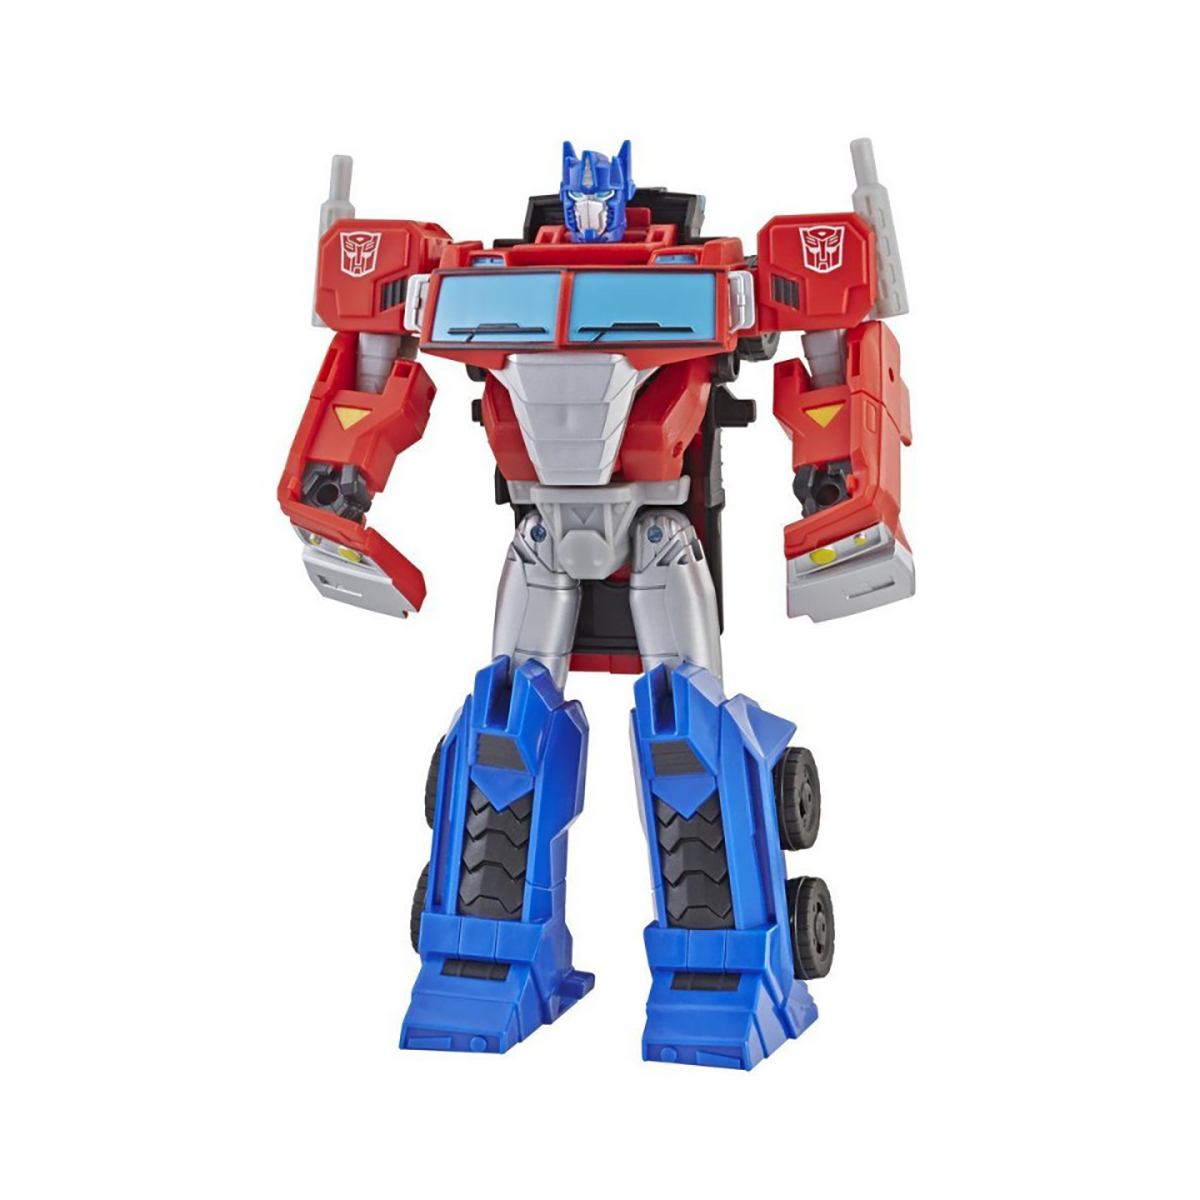 Figurina Transformers Cyberverse Action Attacker Ultra, Optimus Prime